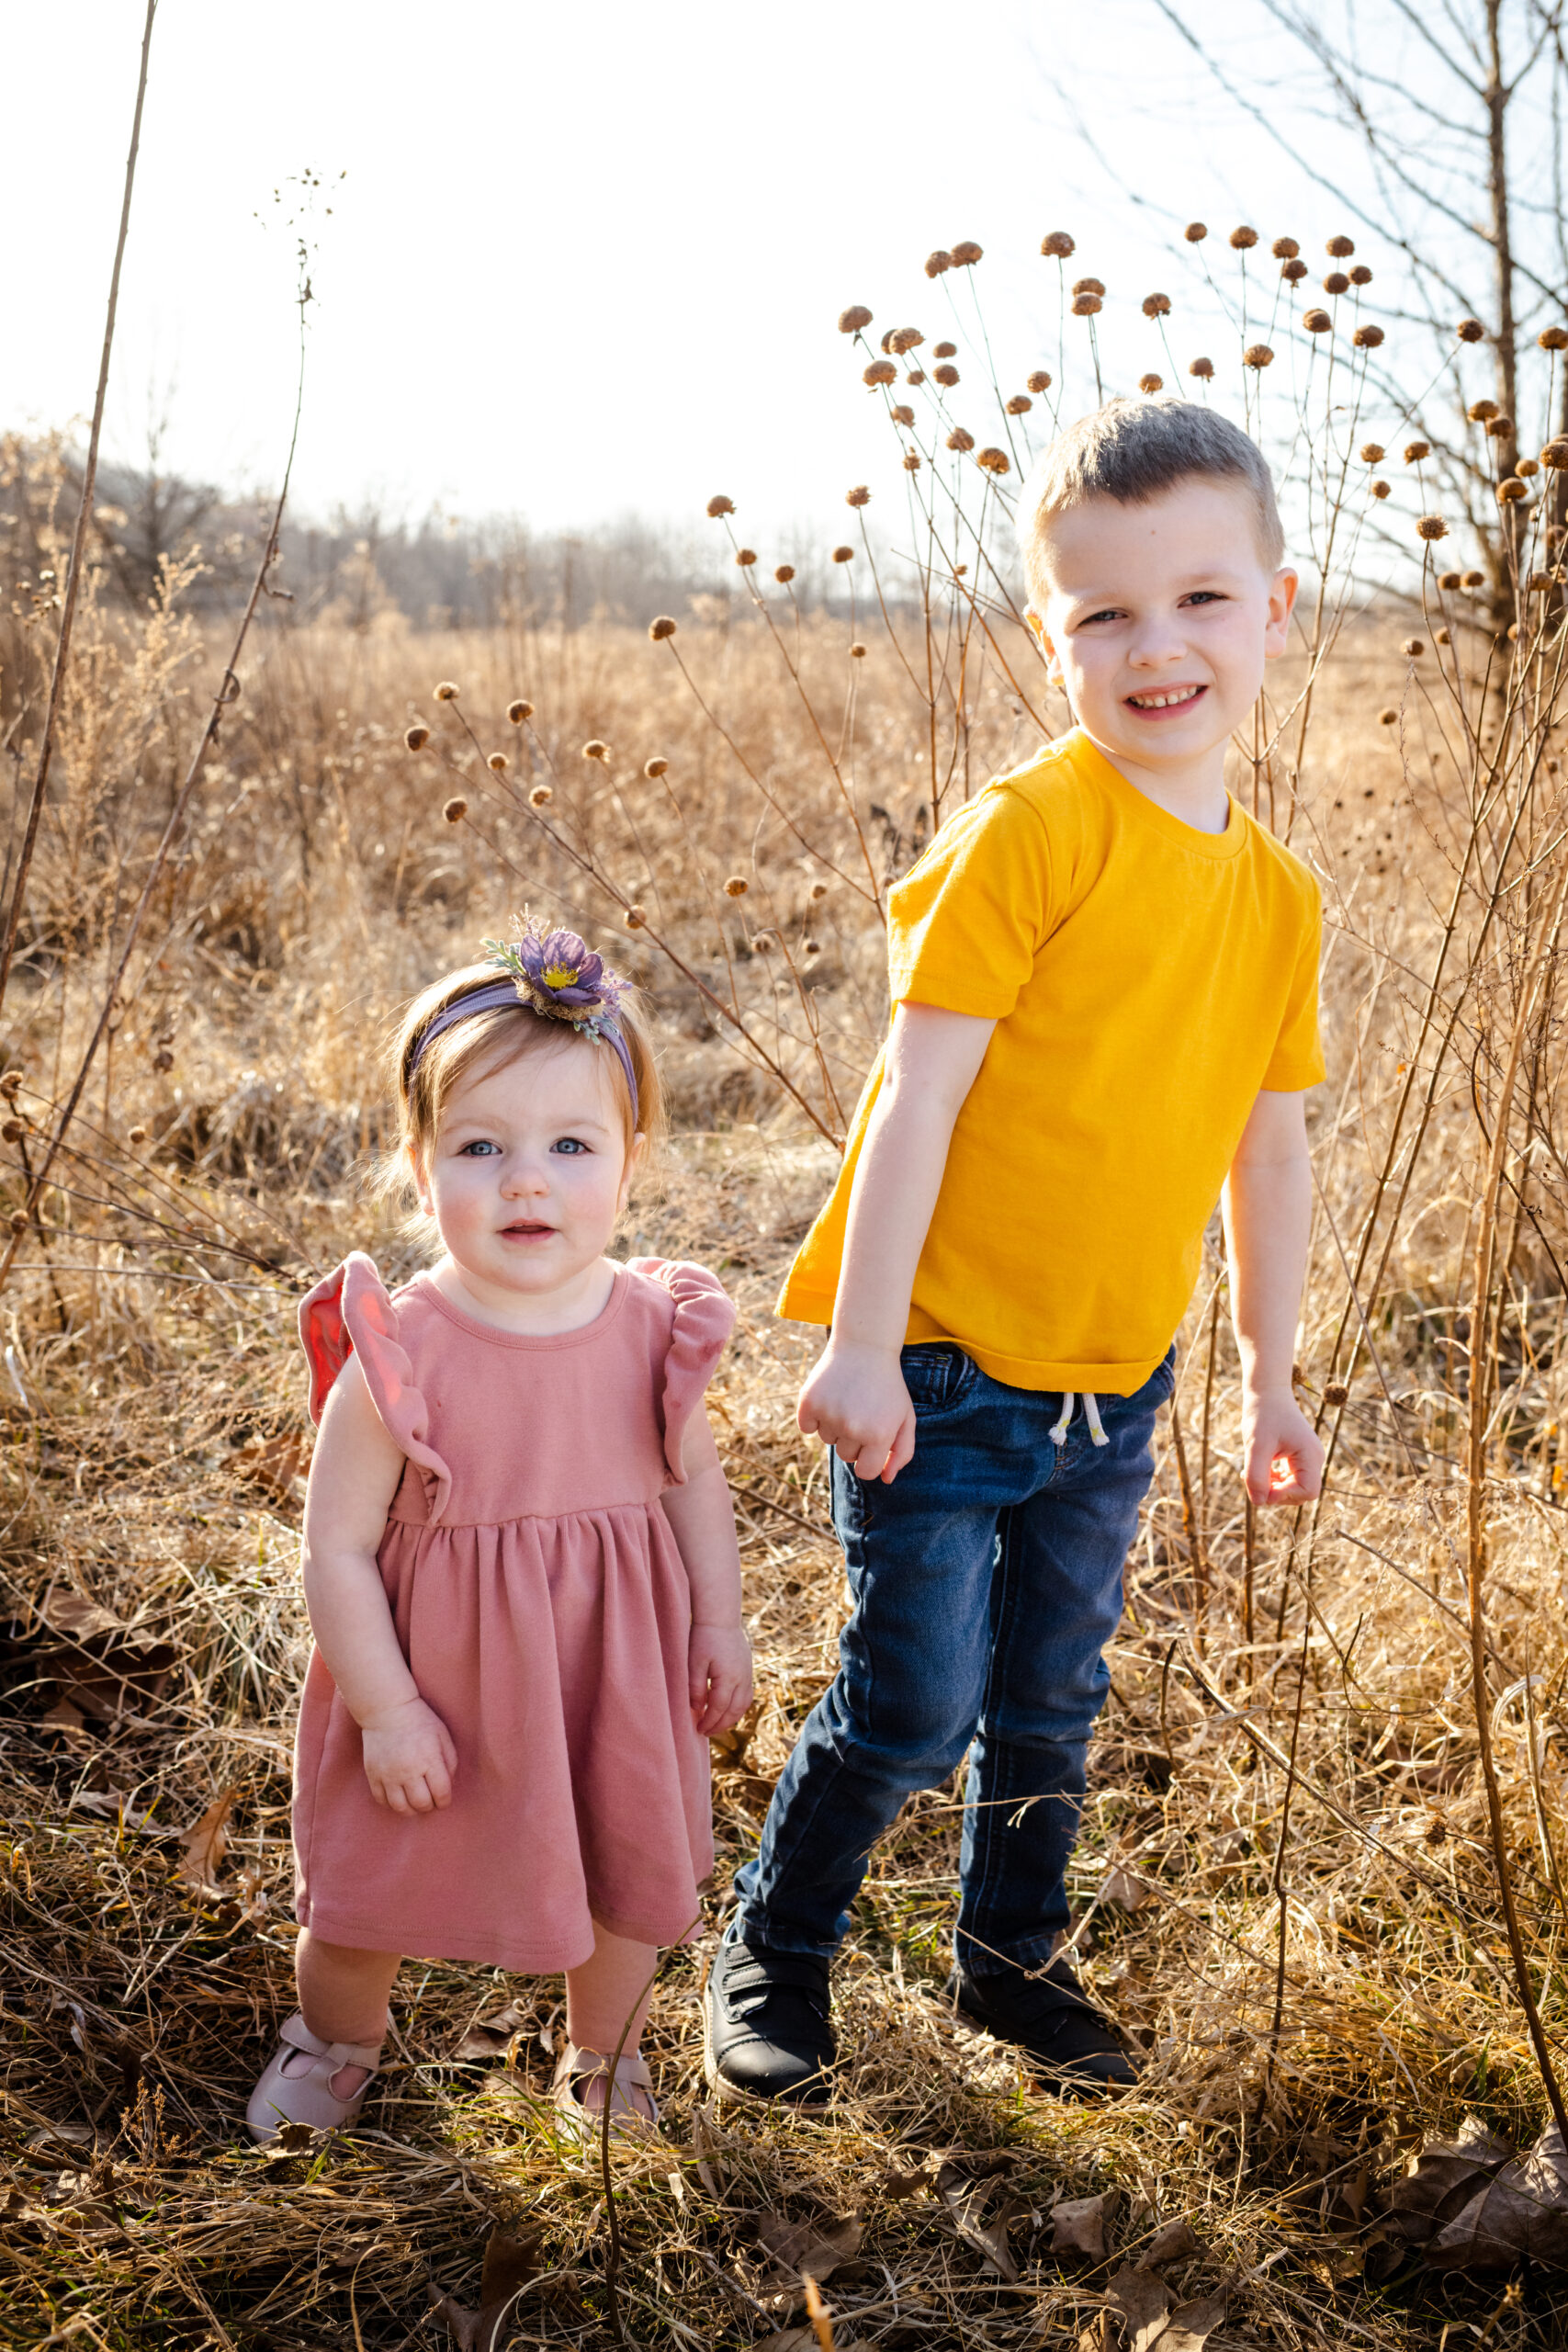 brother standing by little sister in golden field